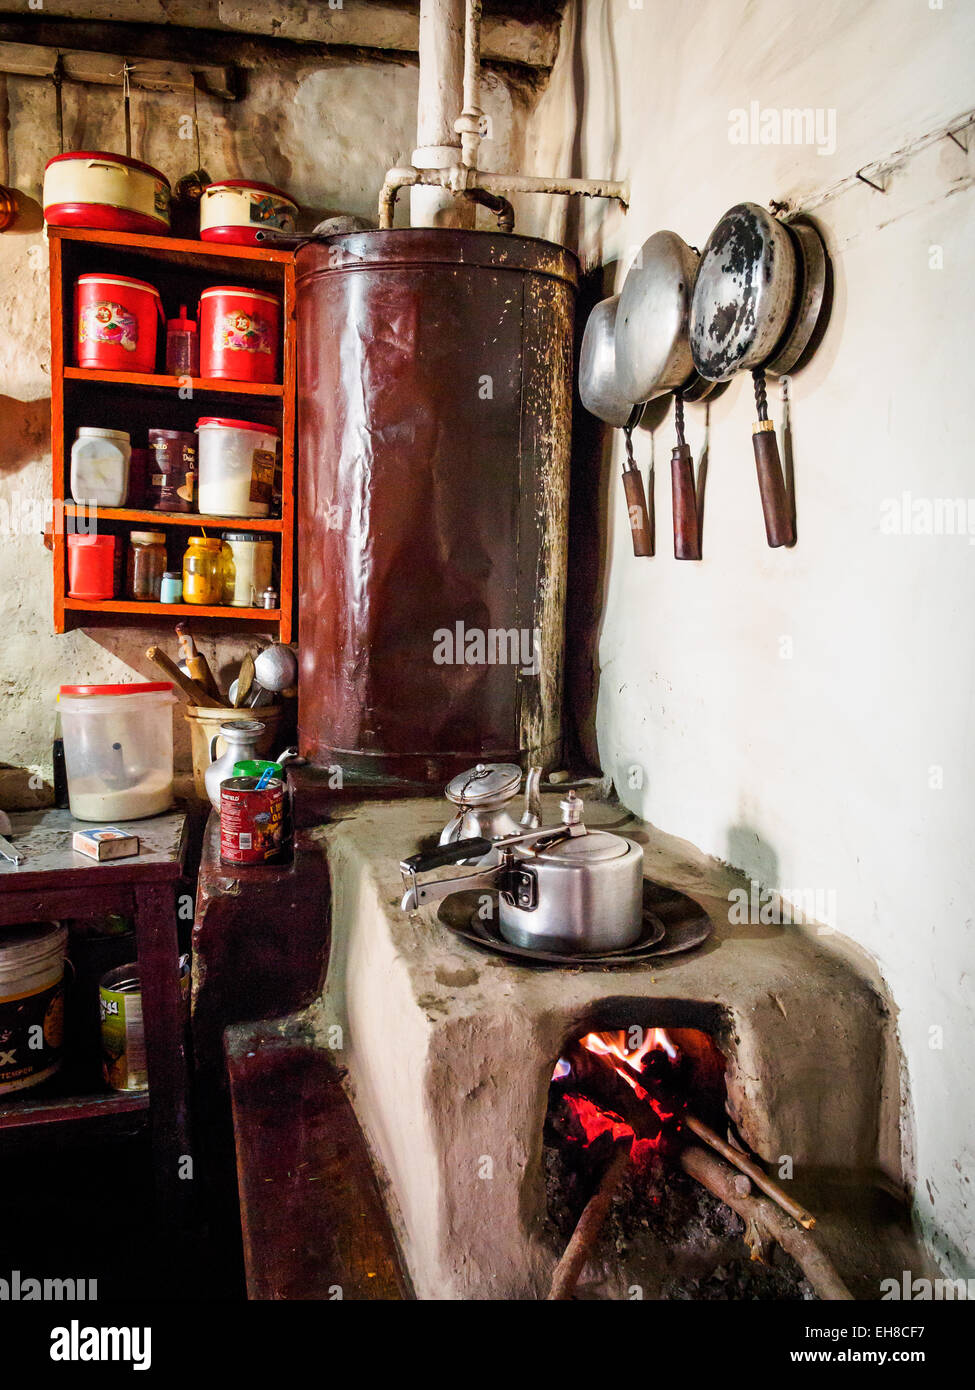 Pressure cookers on a clay stove in a guest house in the village of Ghami, Mustang, Nepal. - Stock Image